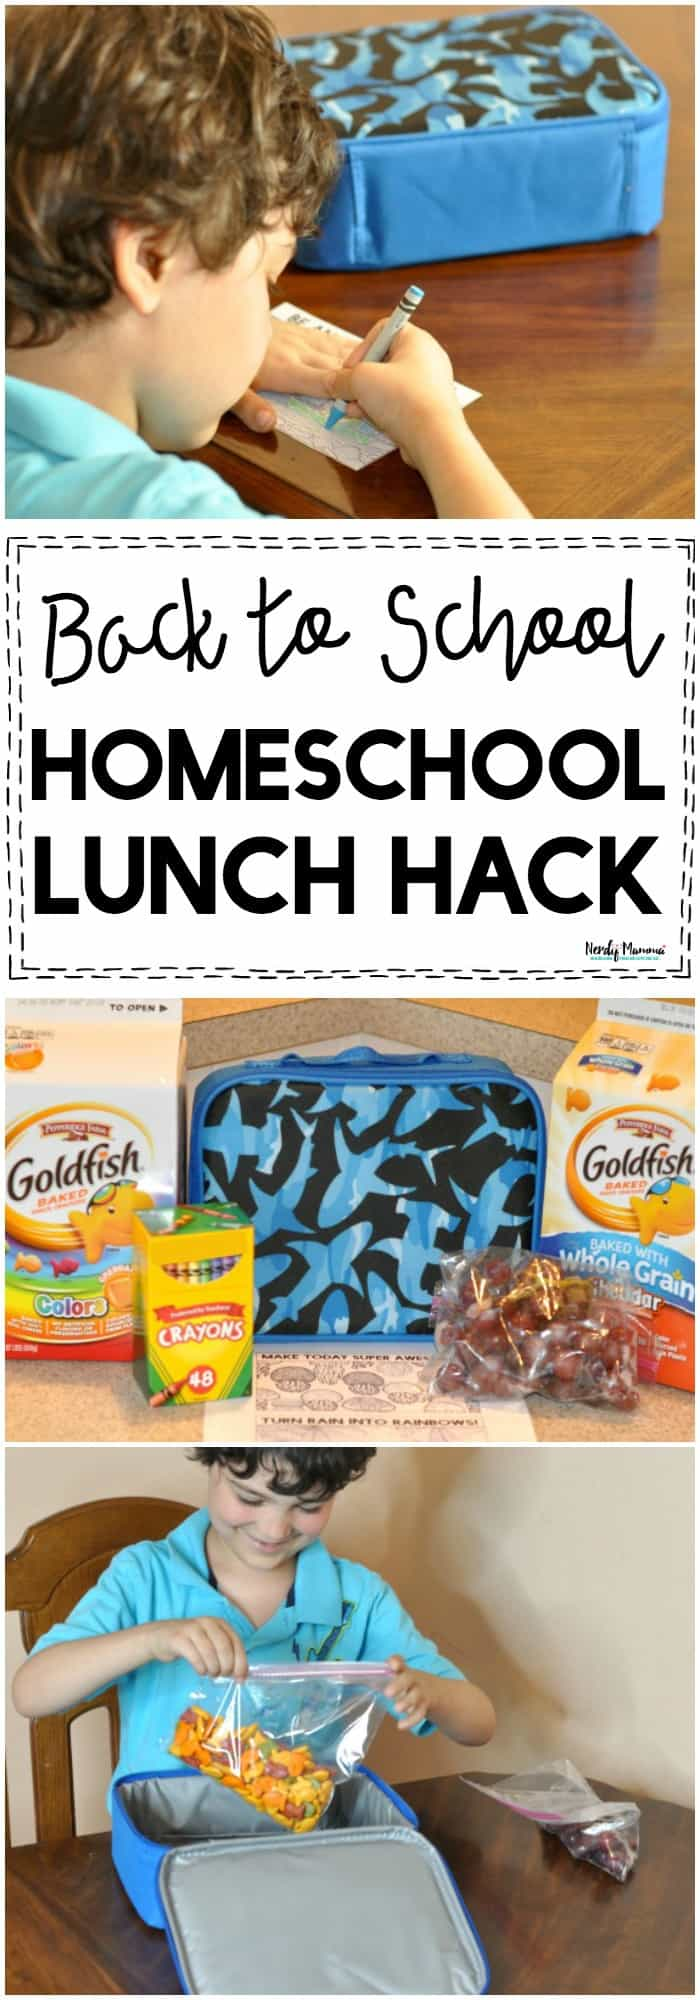 OMG this is THE BEST Back to School Homeschool Lunch Hack EVER! You've GOT to try this!